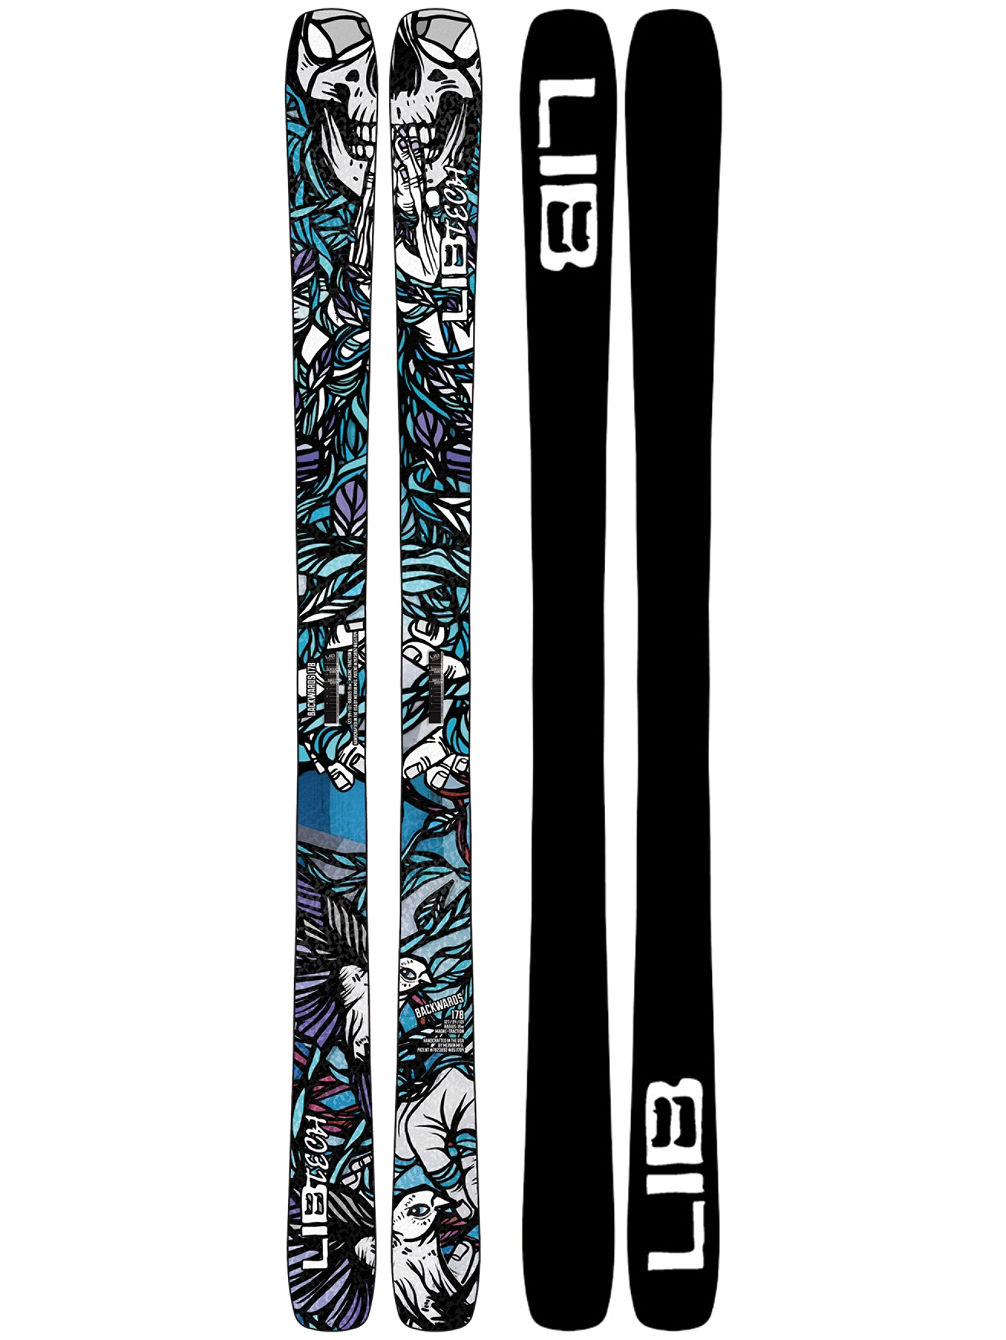 Backwards 166 2020 Skis